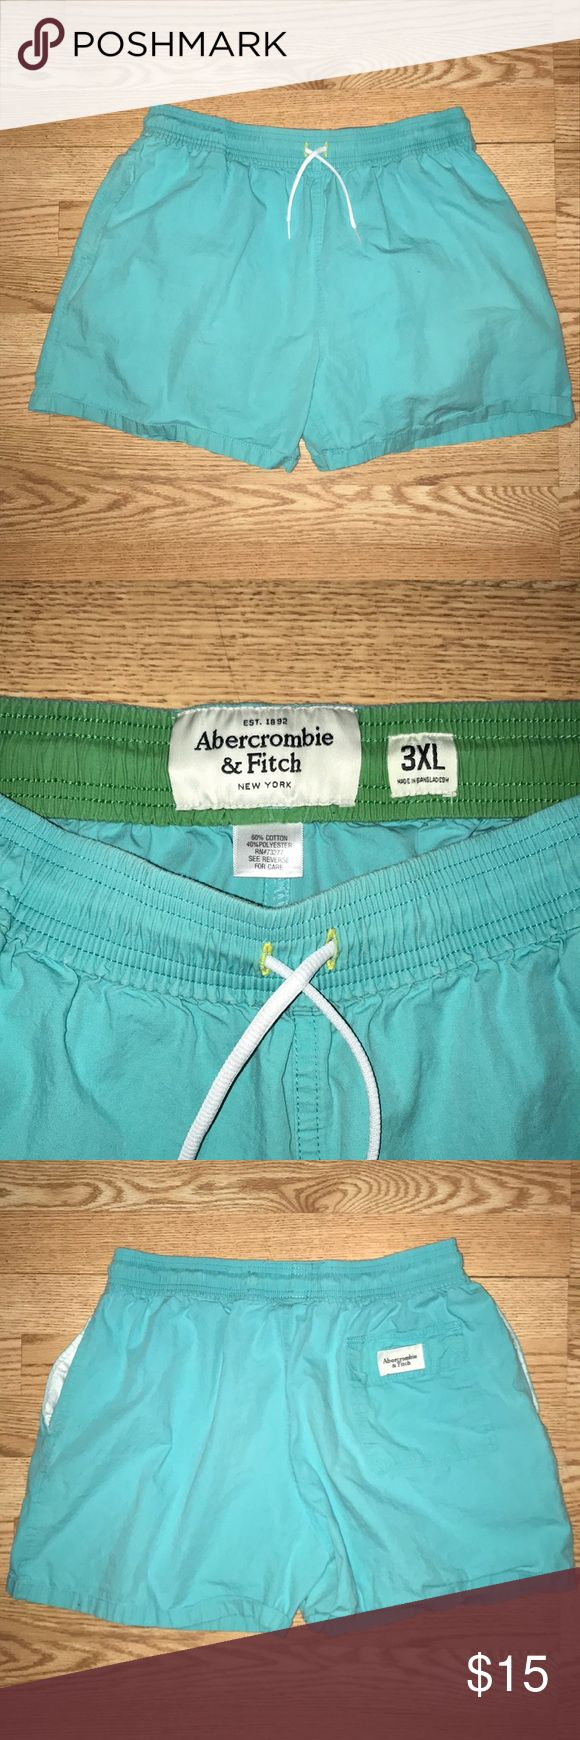 Abercrombie and Fitch Men's Teal shorts Abercrombie and Fitch Men's Teal shorts Size says 3XL They fit like a 34-35  I'm a 35-36 and they fit a little snug.  Elastic/Draw string  Two pockets One butt pocket; Velcro Abercrombie & Fitch Shorts